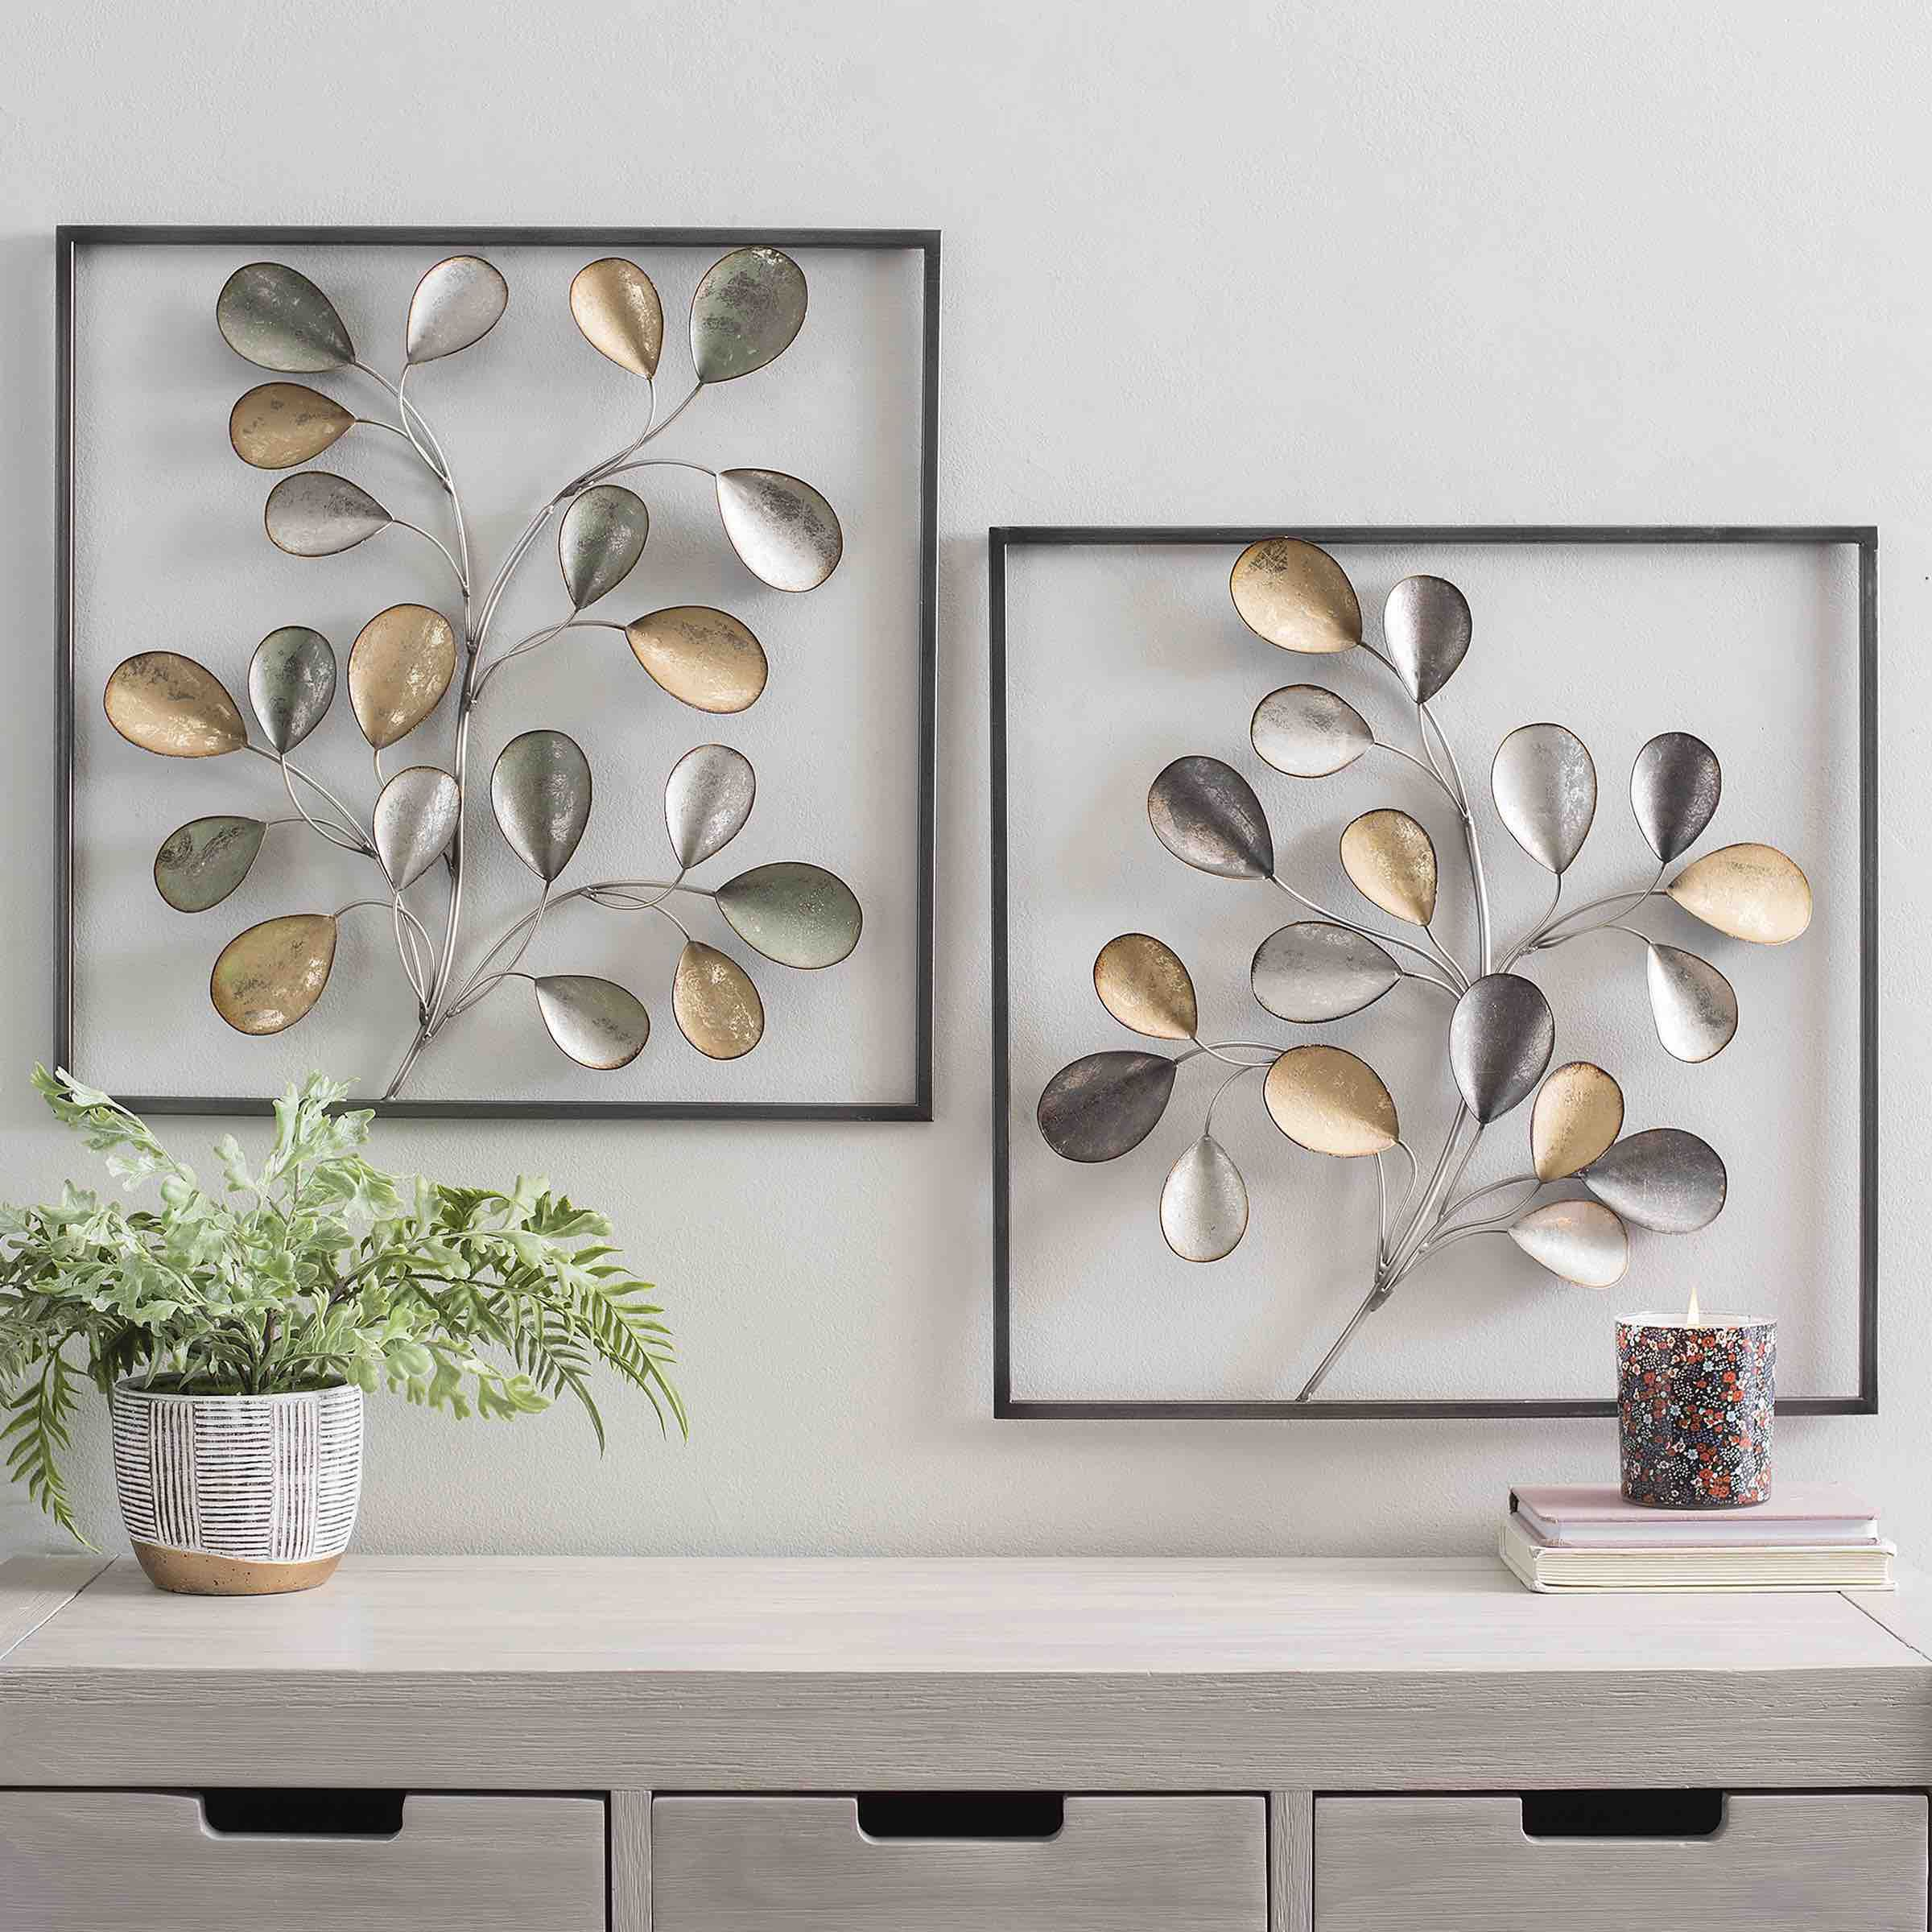 Pin On Wall Decor And Inspiration